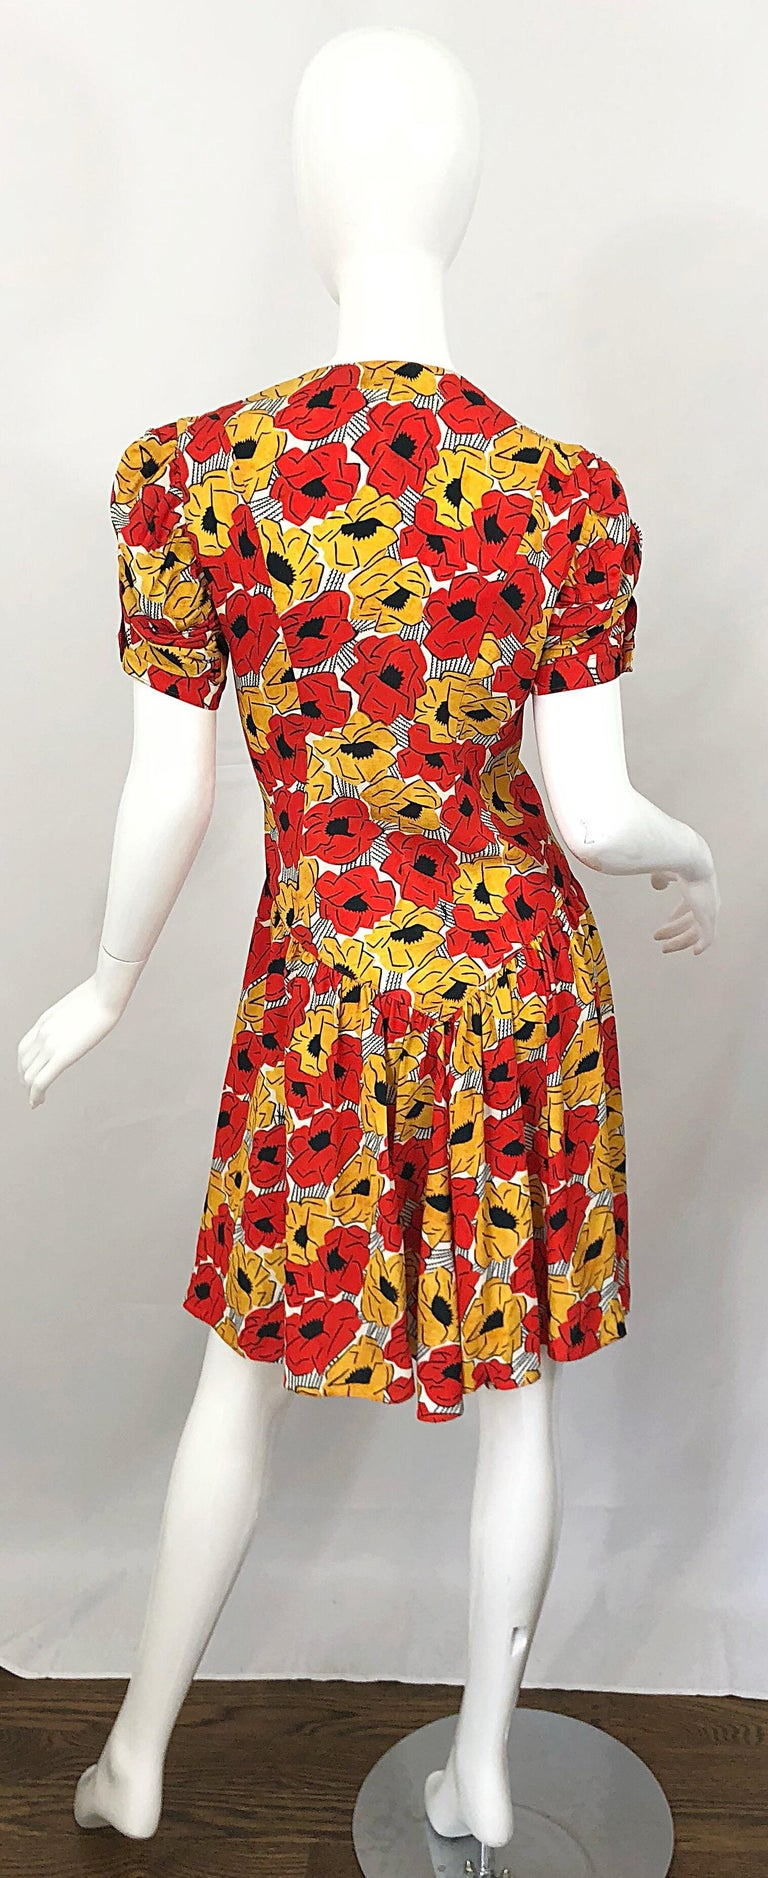 Yves Saint Laurent YSL Size 42 / 10 Yellow + Red Poppy Print Drop Waist Dress For Sale 2